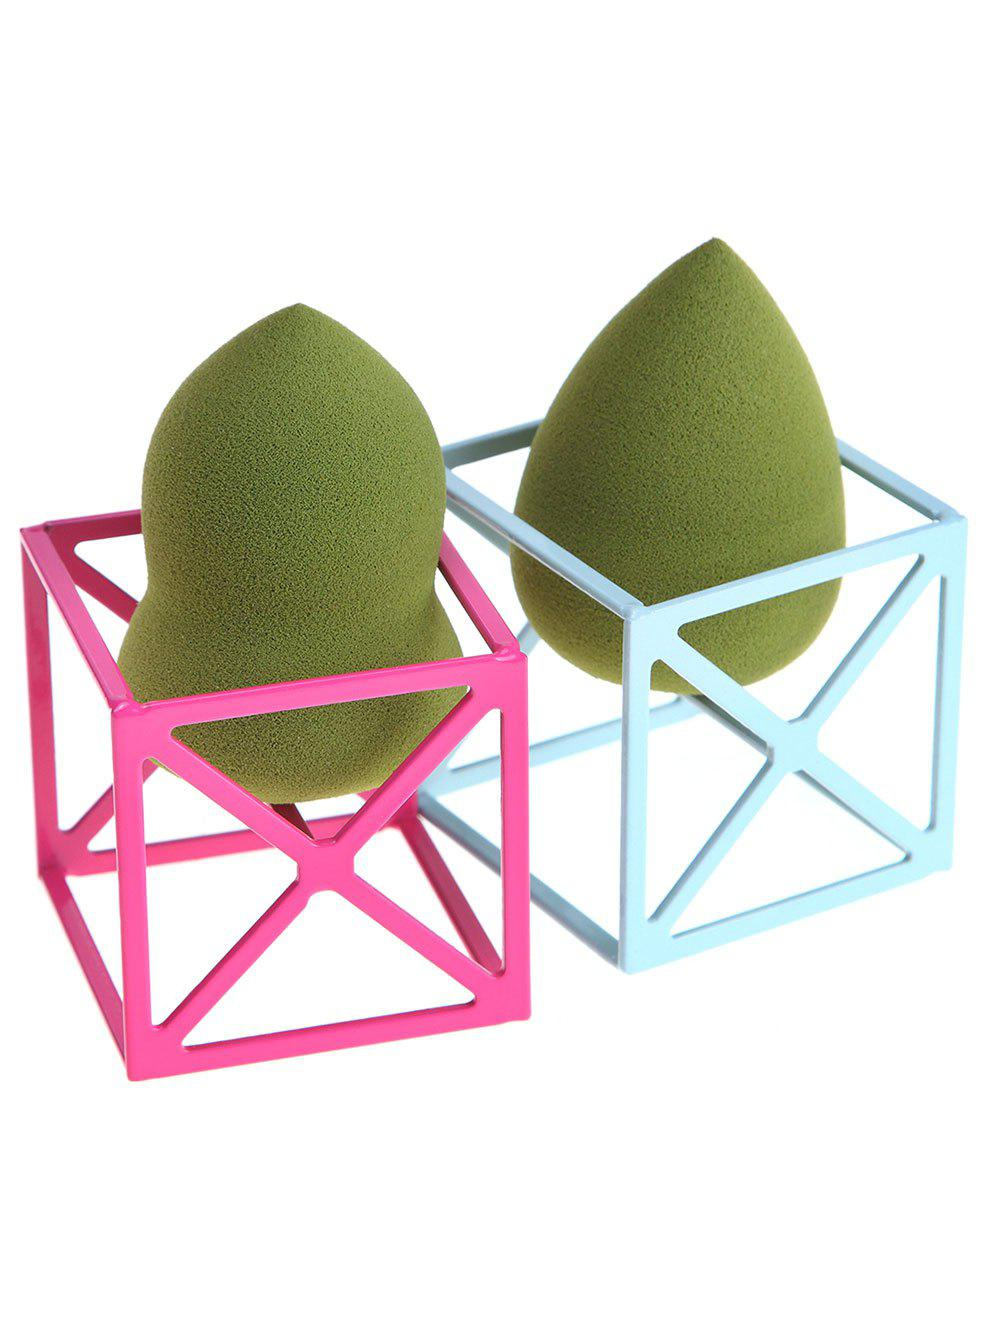 2Pcs Magic Cube Shape Makeup Sponge Holders clear acrylic a3a4a5a6 sign display paper card label advertising holders horizontal t stands by magnet sucked on desktop 2pcs